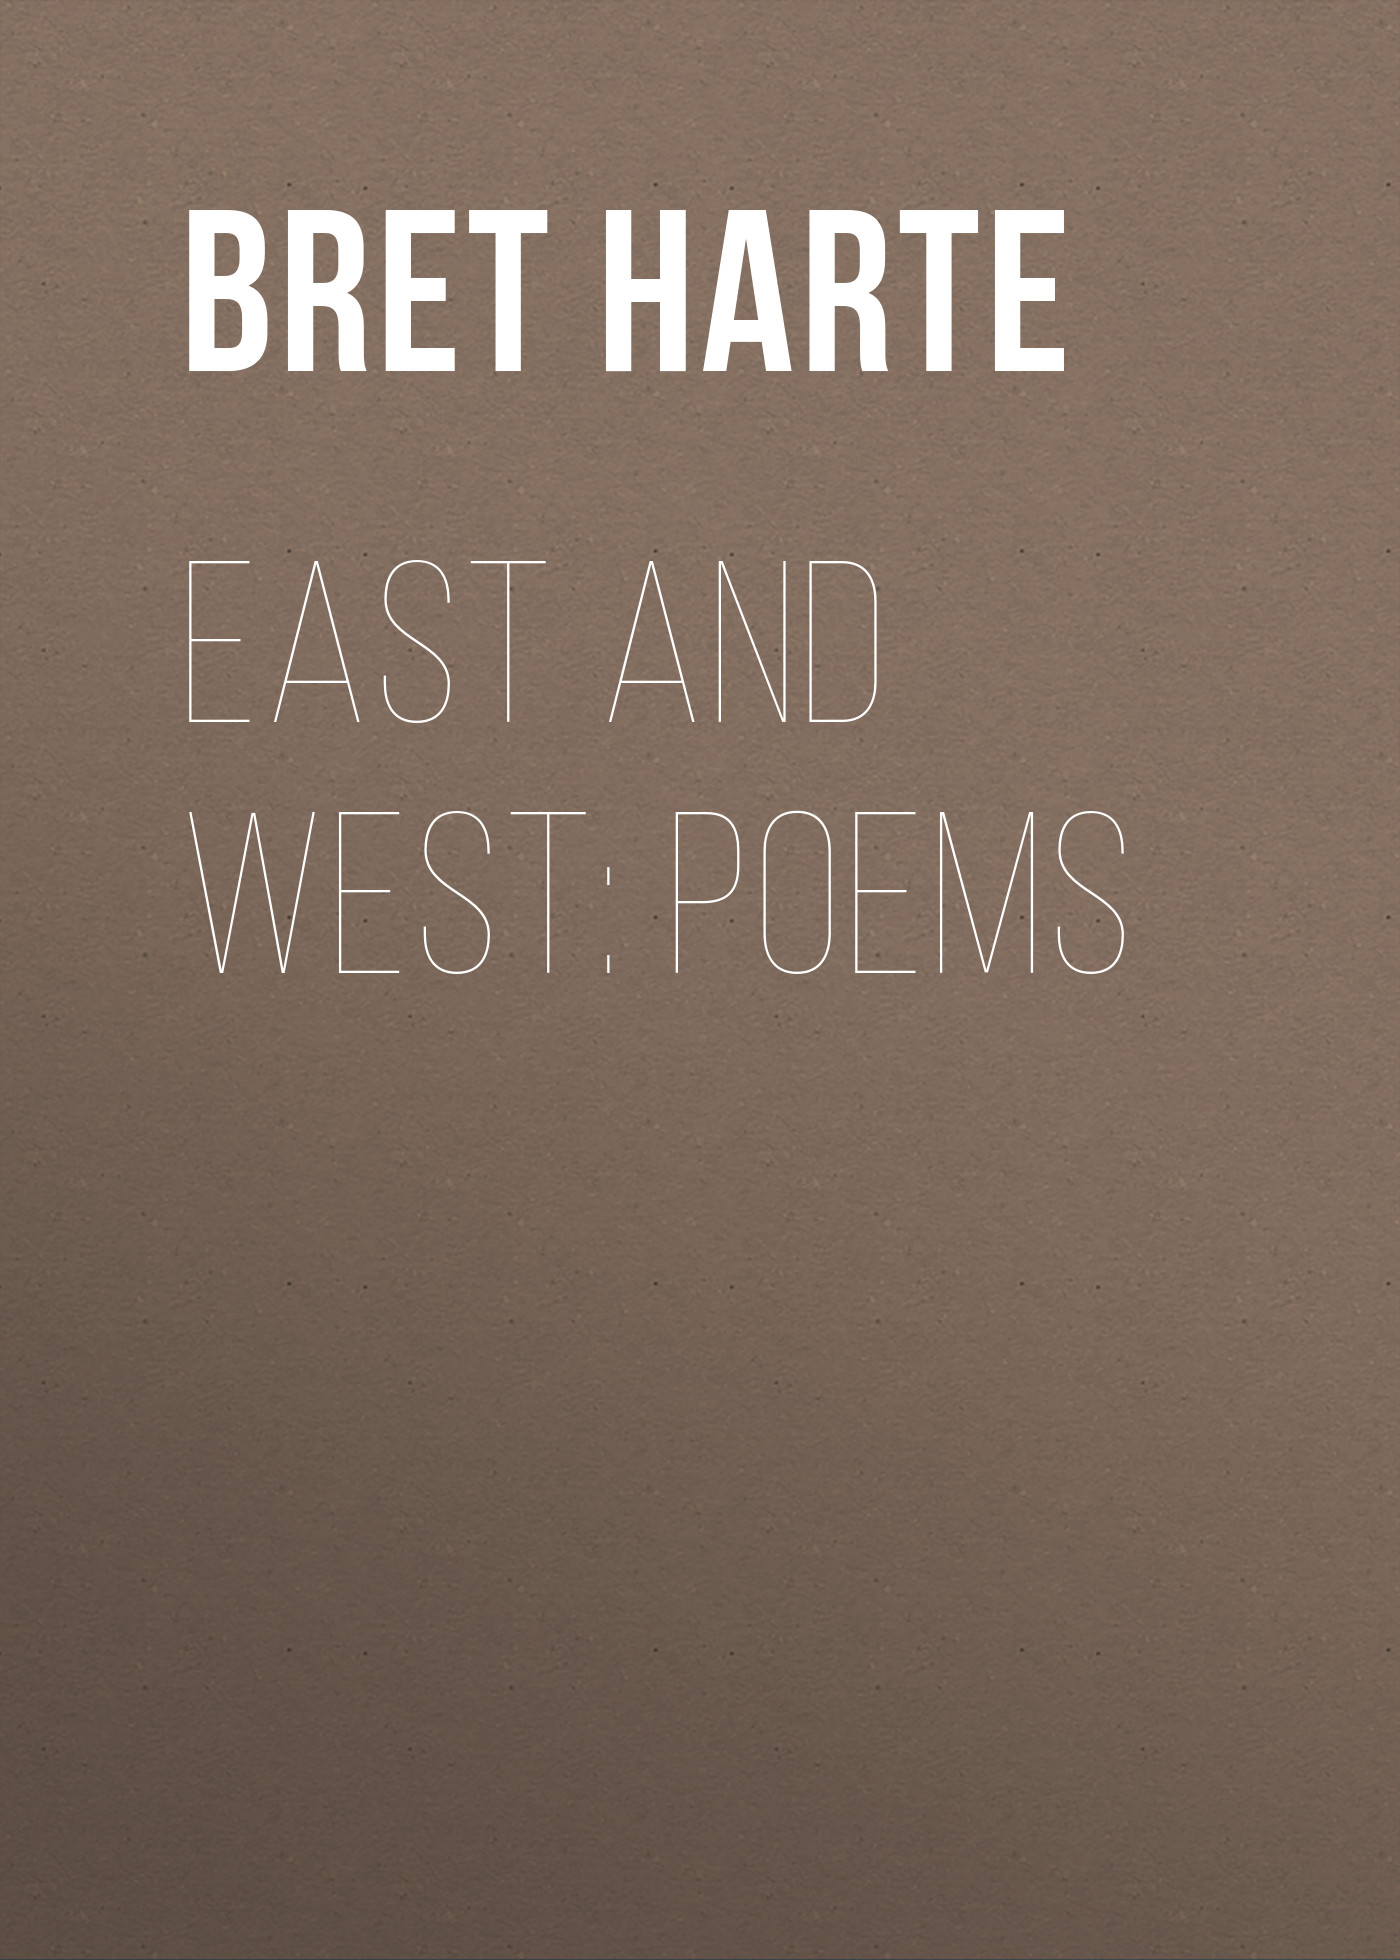 Bret Harte East and West: Poems bret harte the luck of roaring camp heathen chinee poems and other sketches